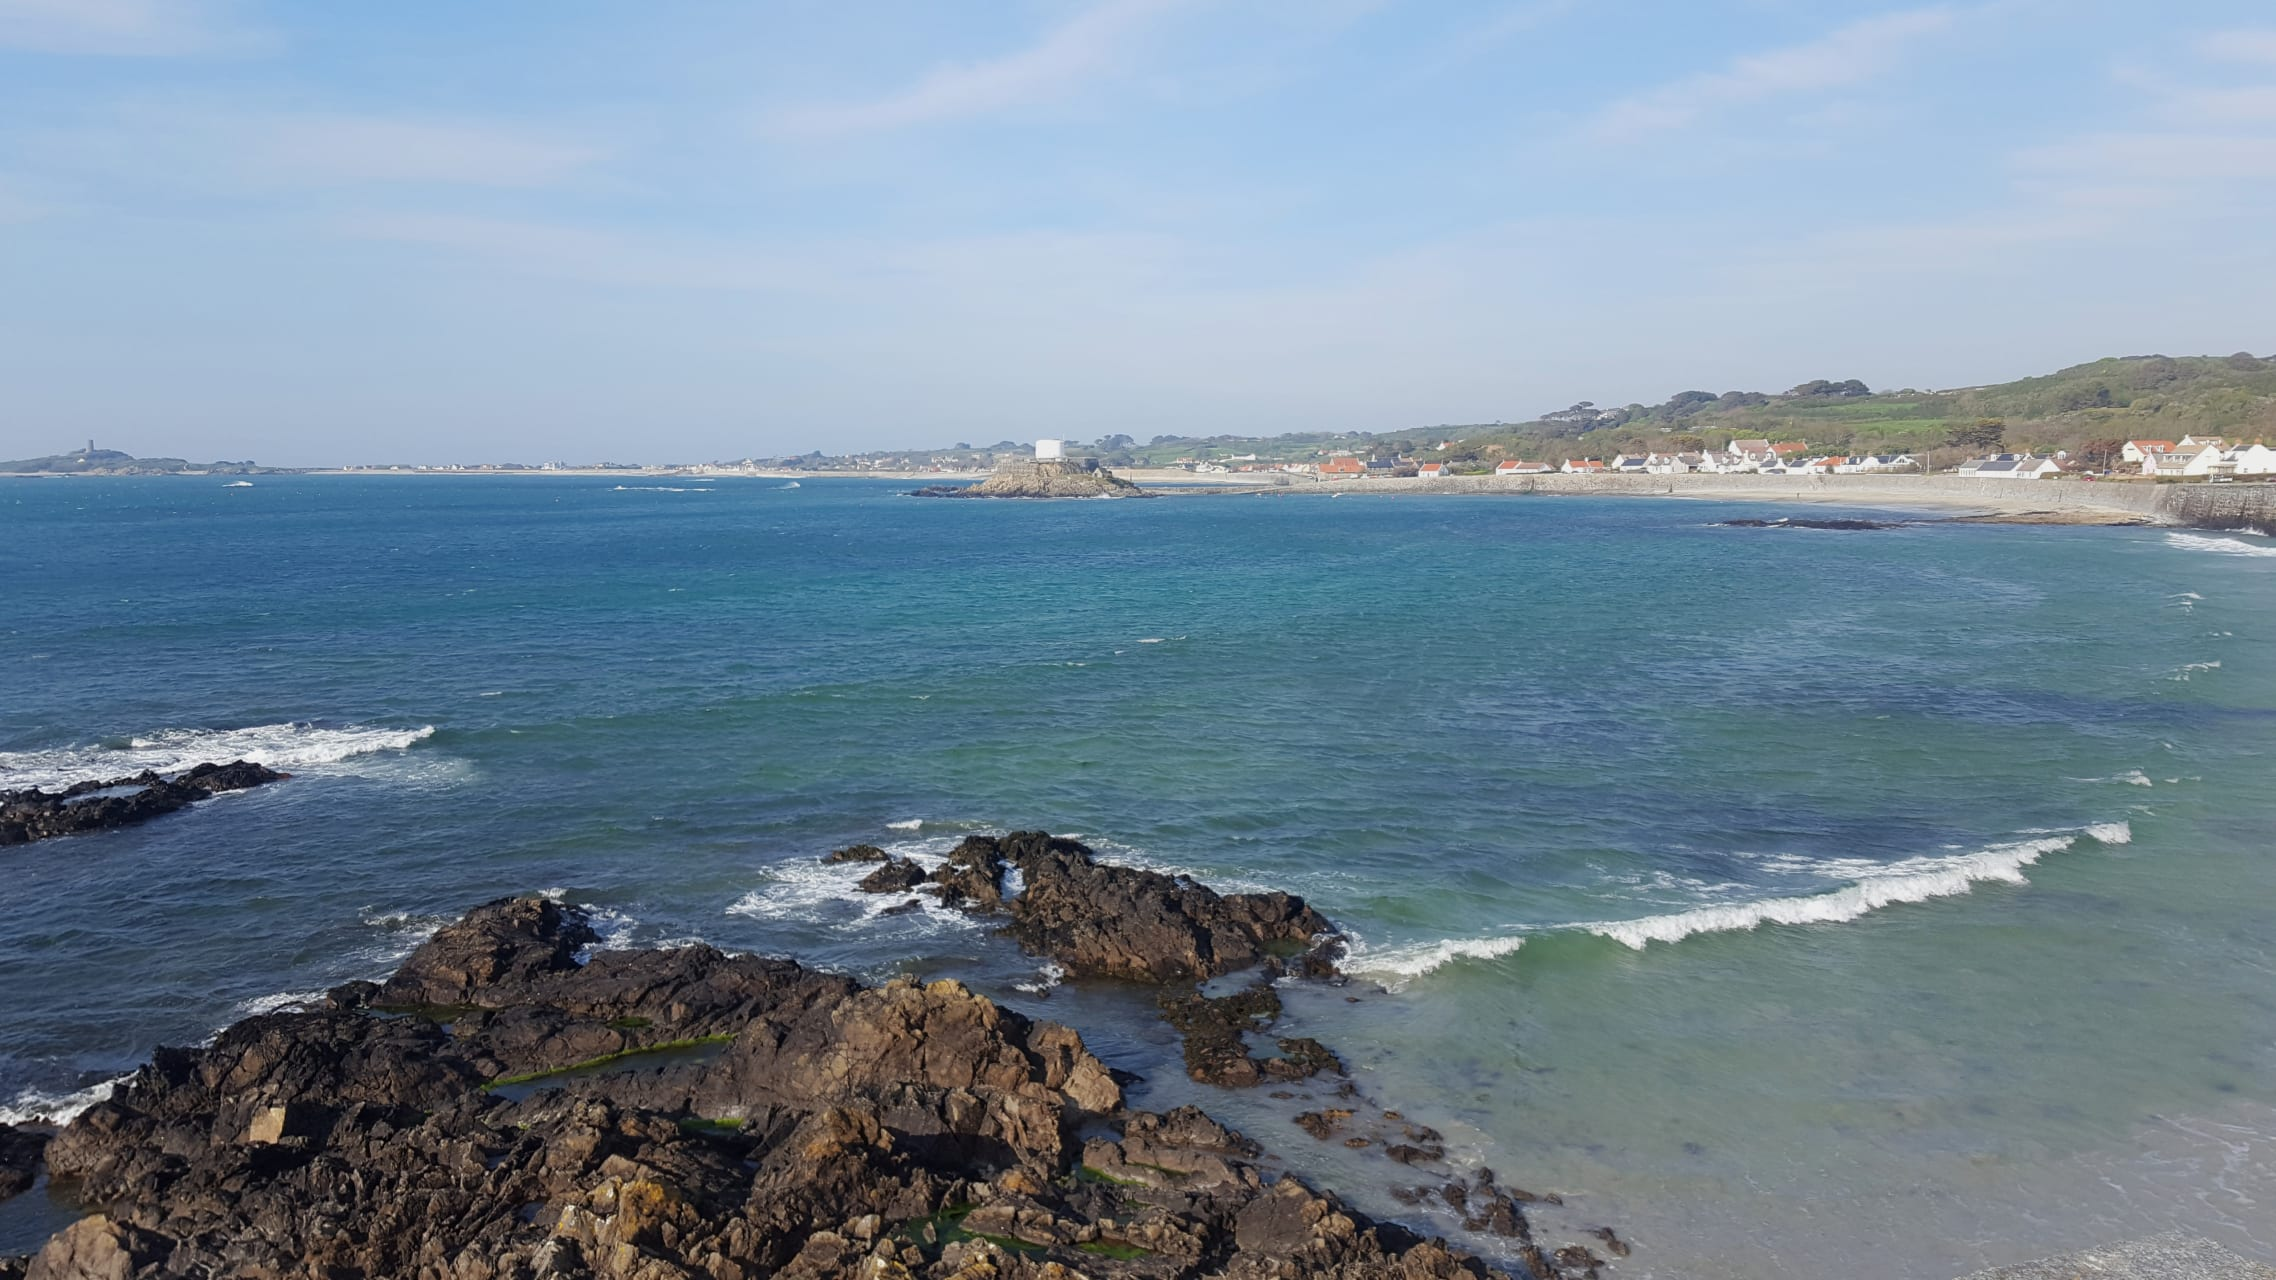 Guernsey - Wander on the West Coast